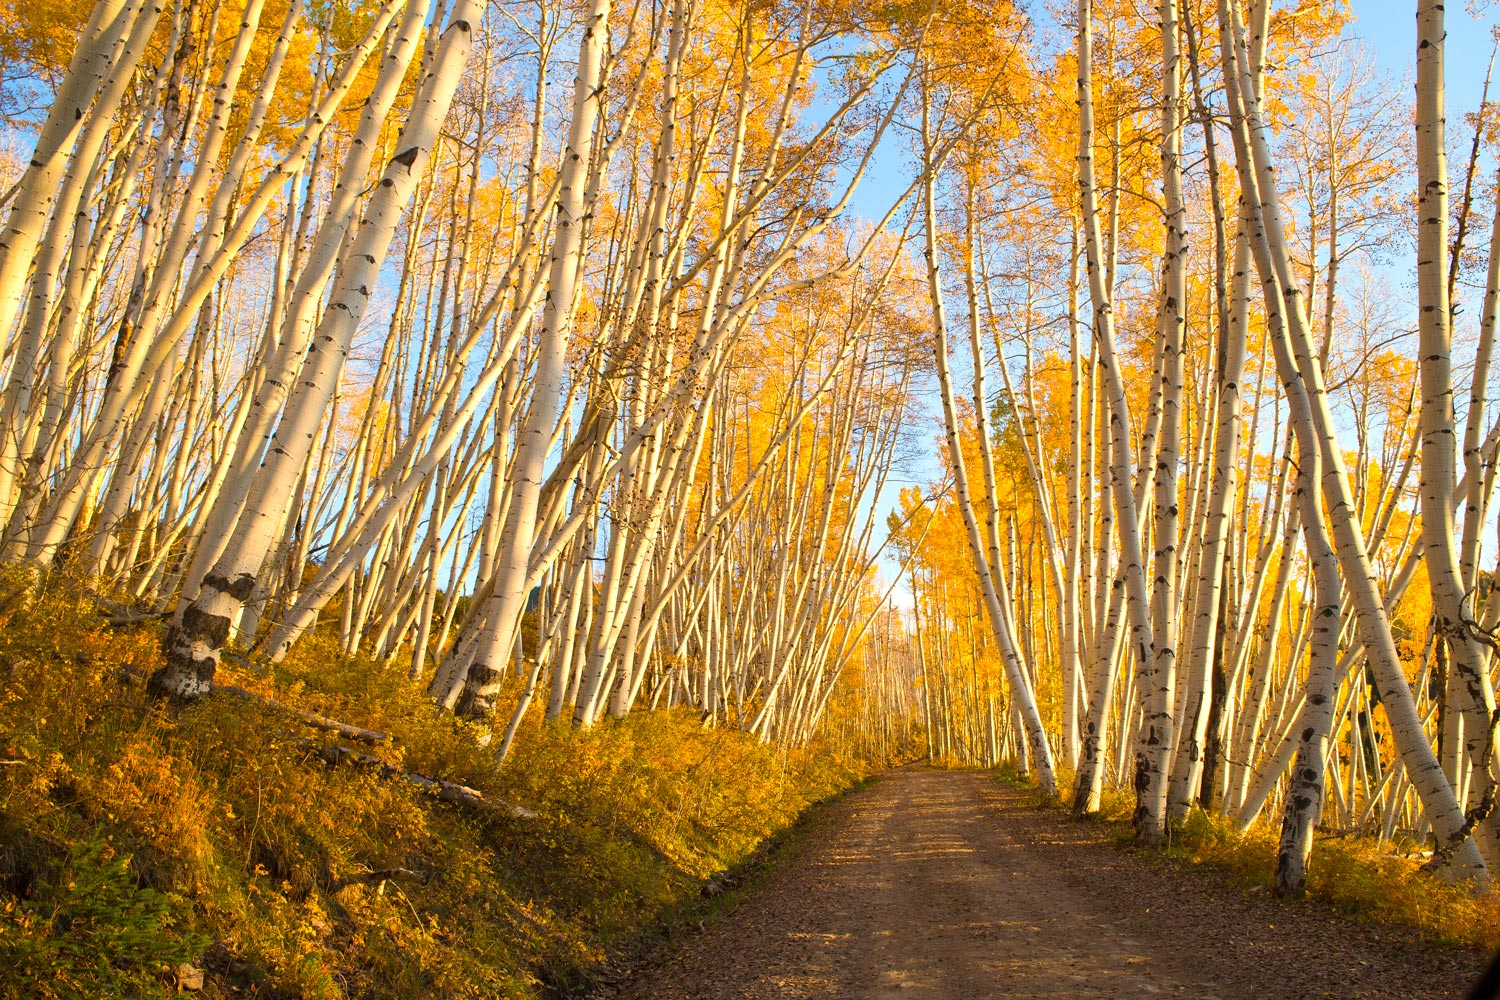 The sun was setting rapidly as I traveled down this dirt road. The aspens seemed to glow as if on fire and leaned ever...